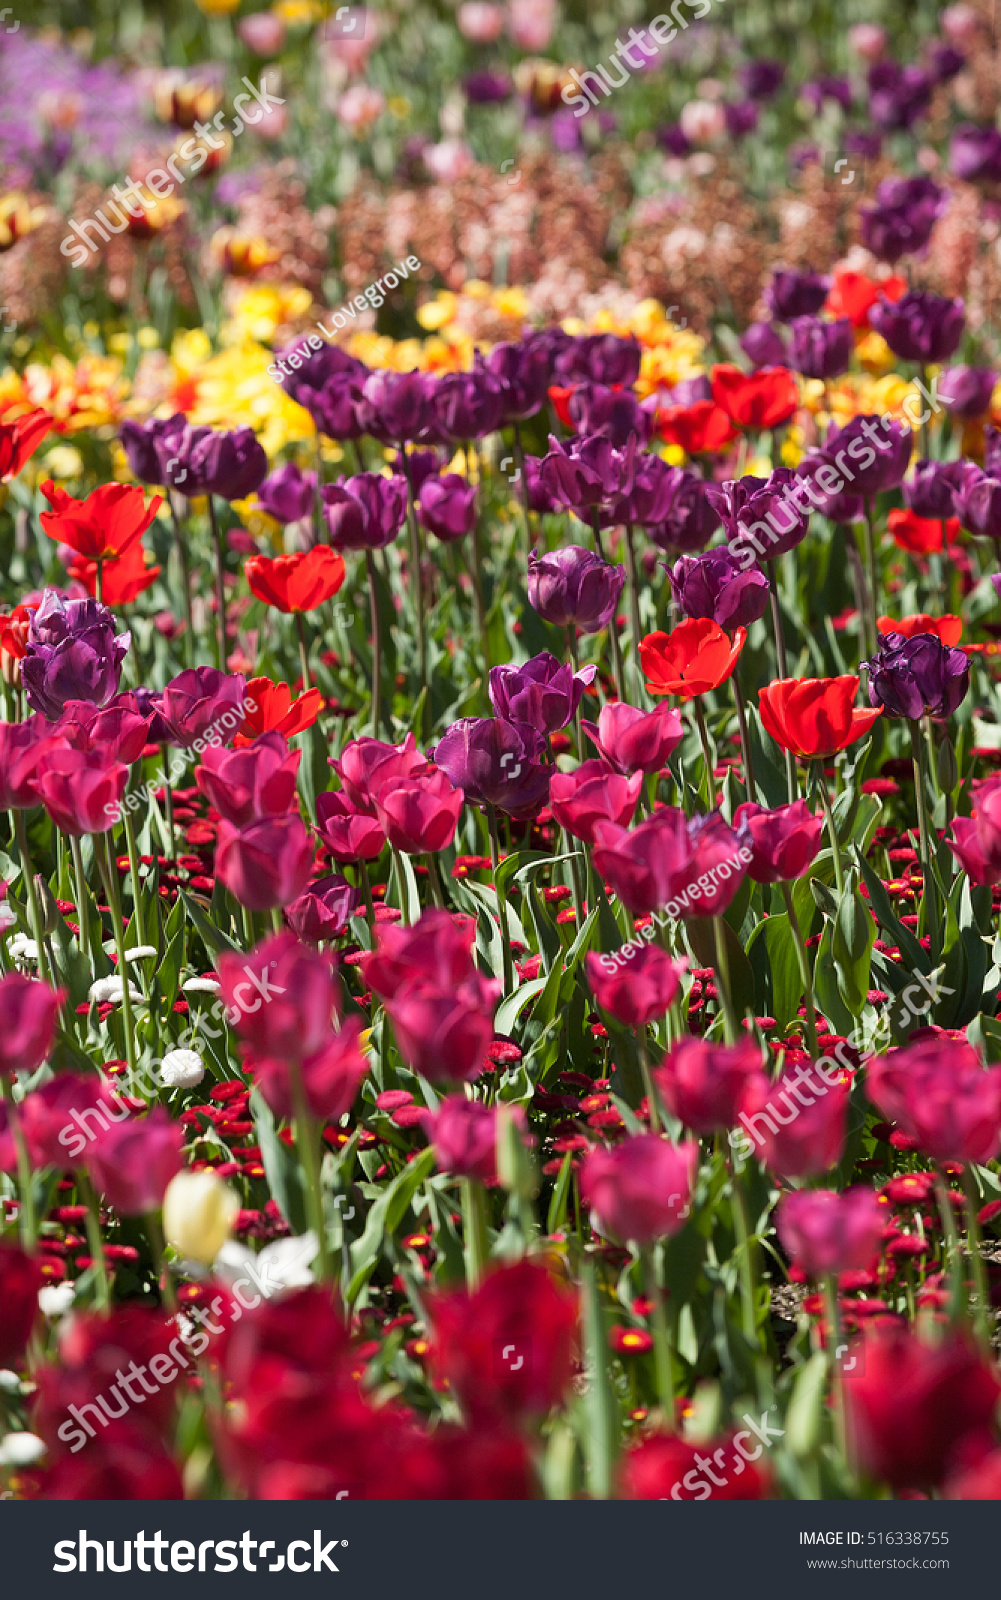 Blooming Colorful Tulips And Other Flowers Background Selective